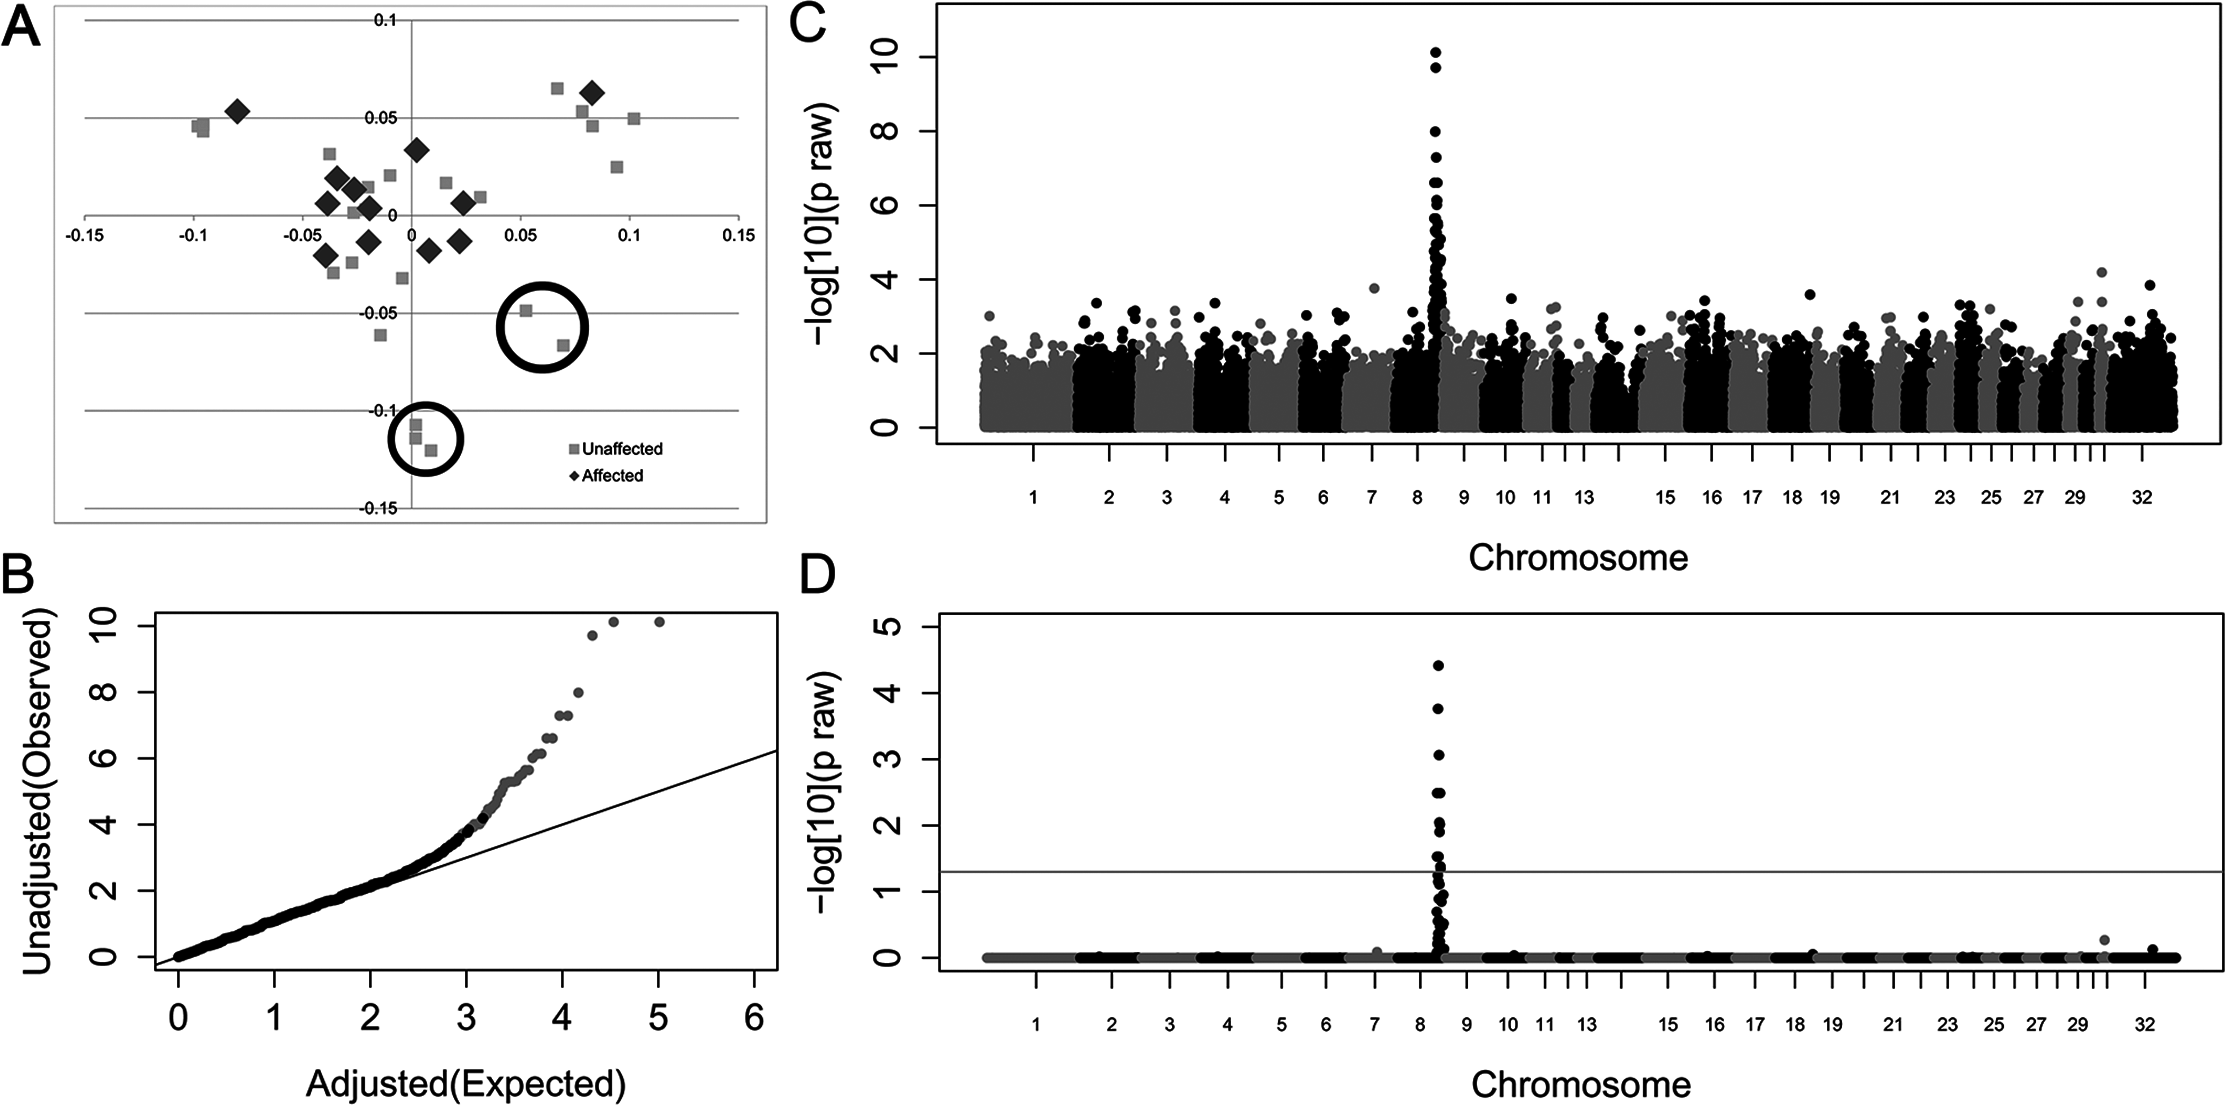 Genome-wide case-control allelic association study results of Connemara ponies with HWSD (15 cases, 24 controls).